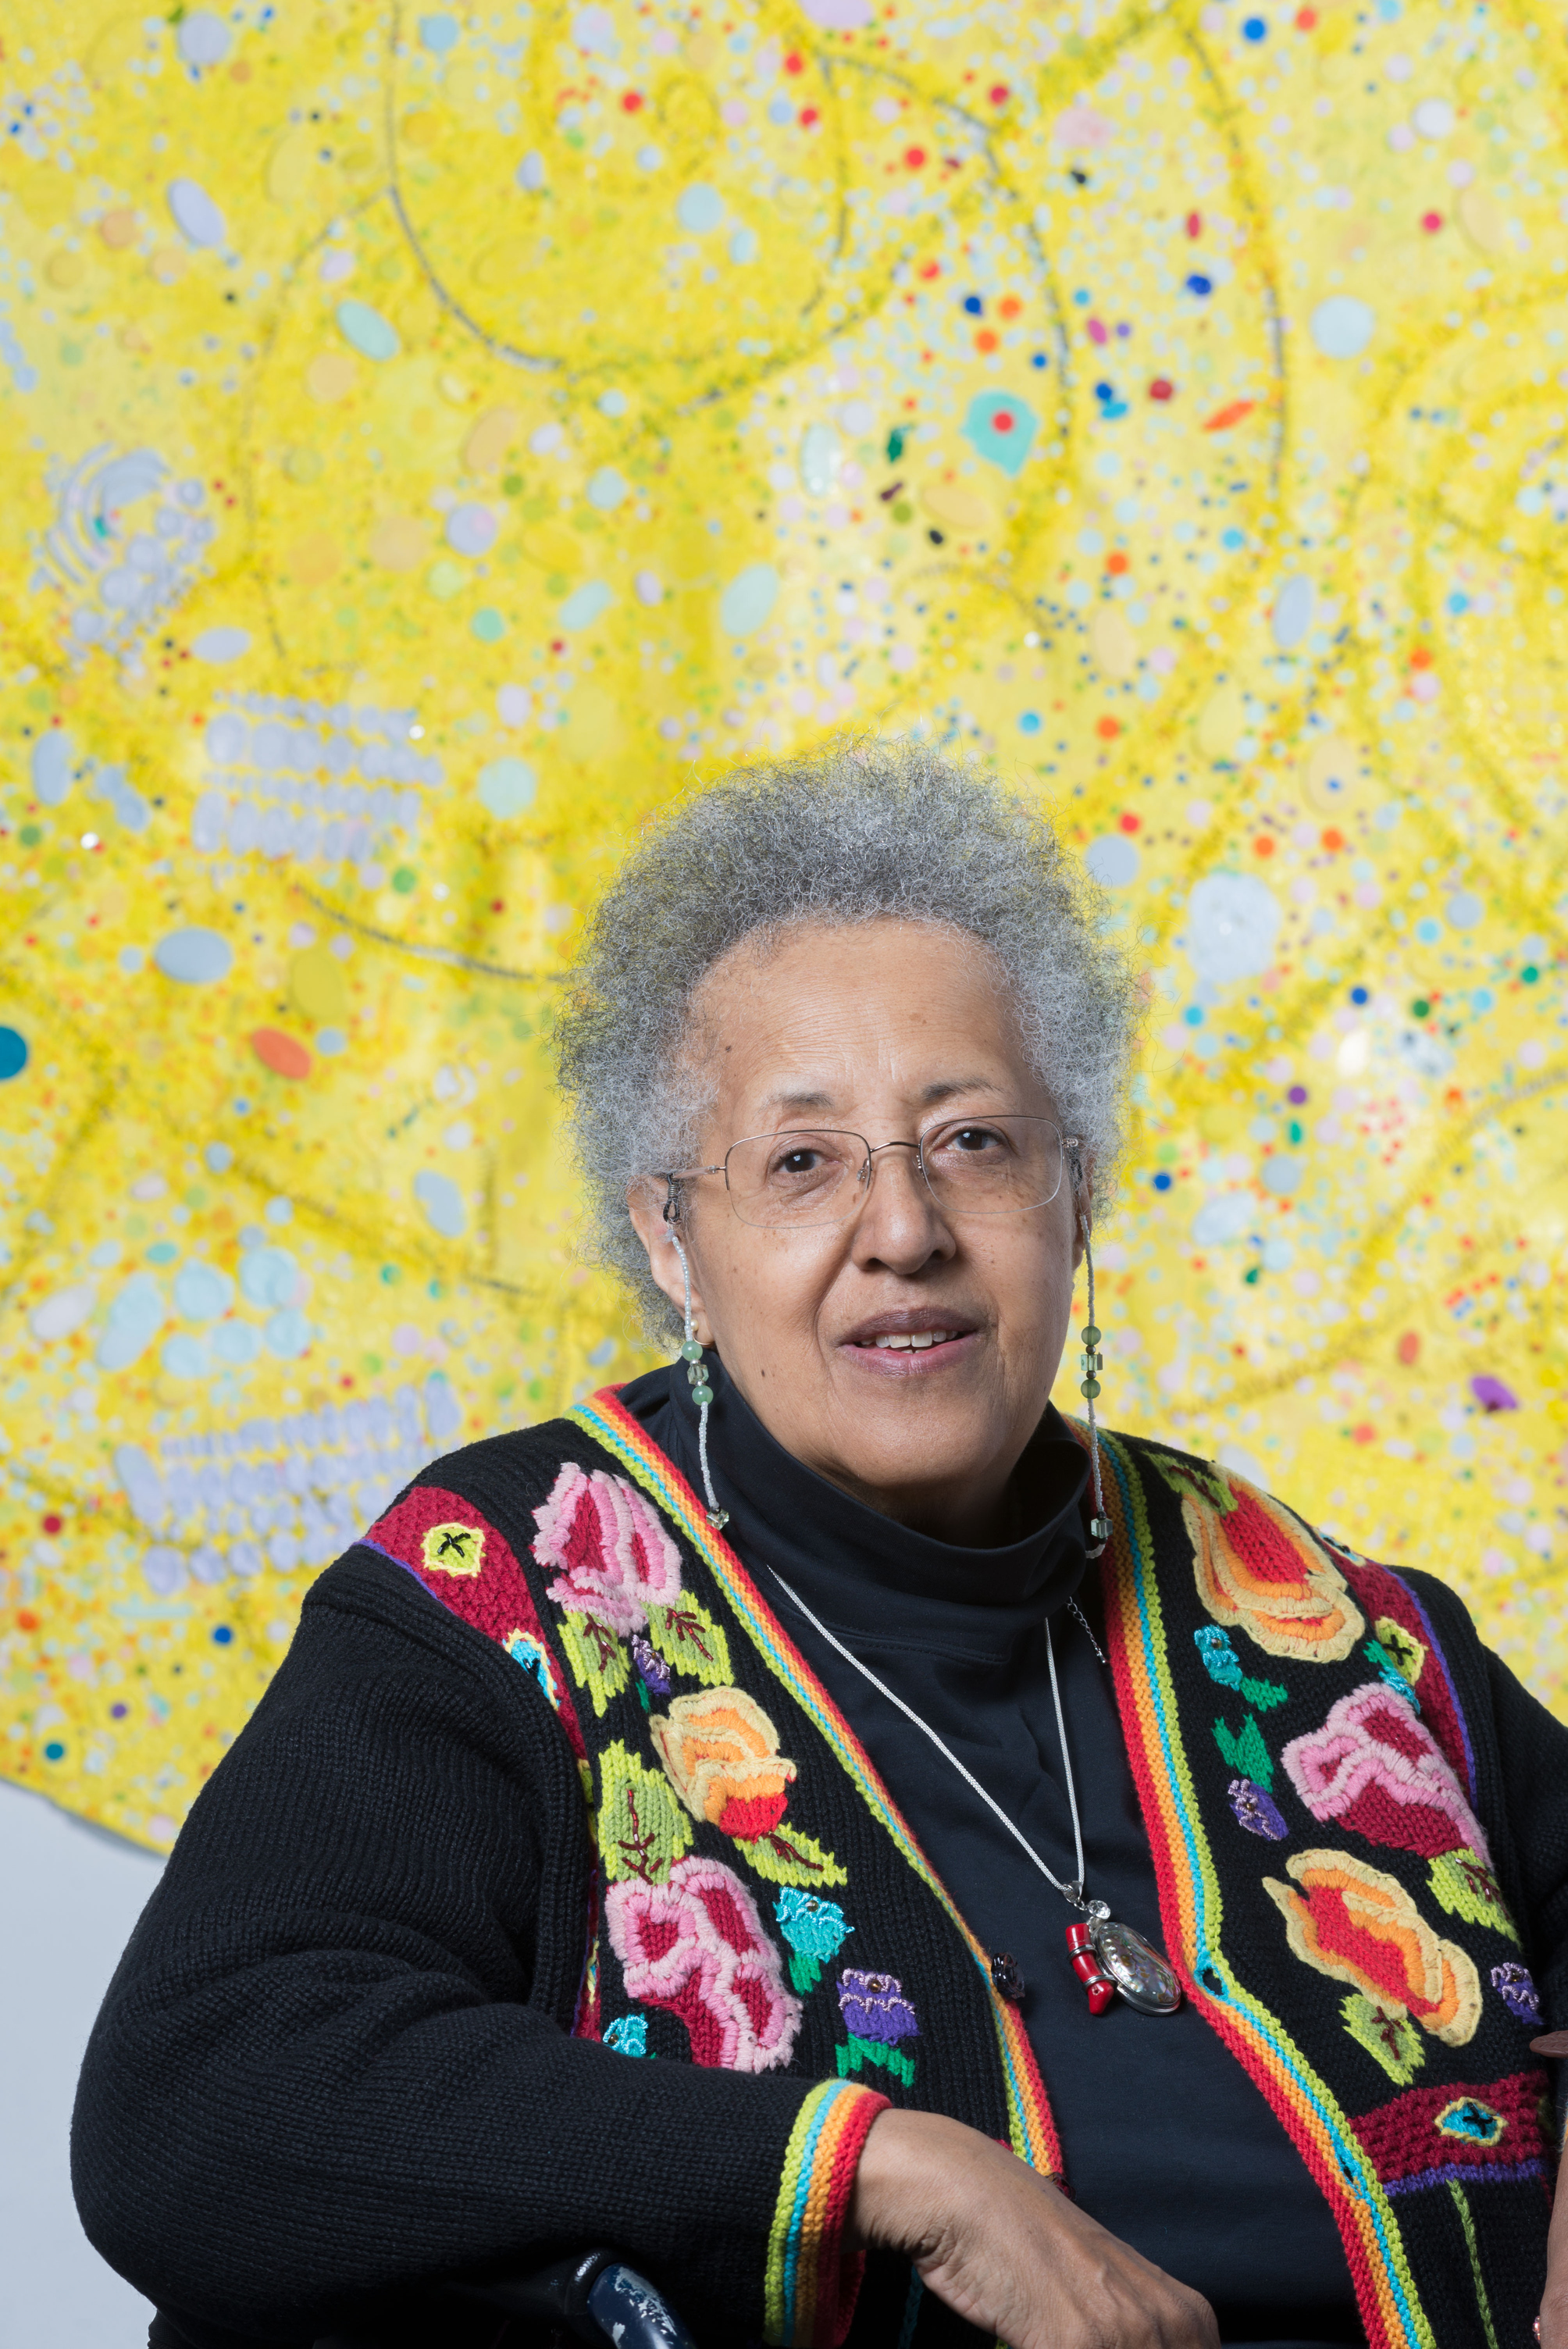 As part of The Shed's mission to help artists bring to life works that they have not yet been able to realize, Howardena Pindell was able to create a piece she's been envisioning for four decades